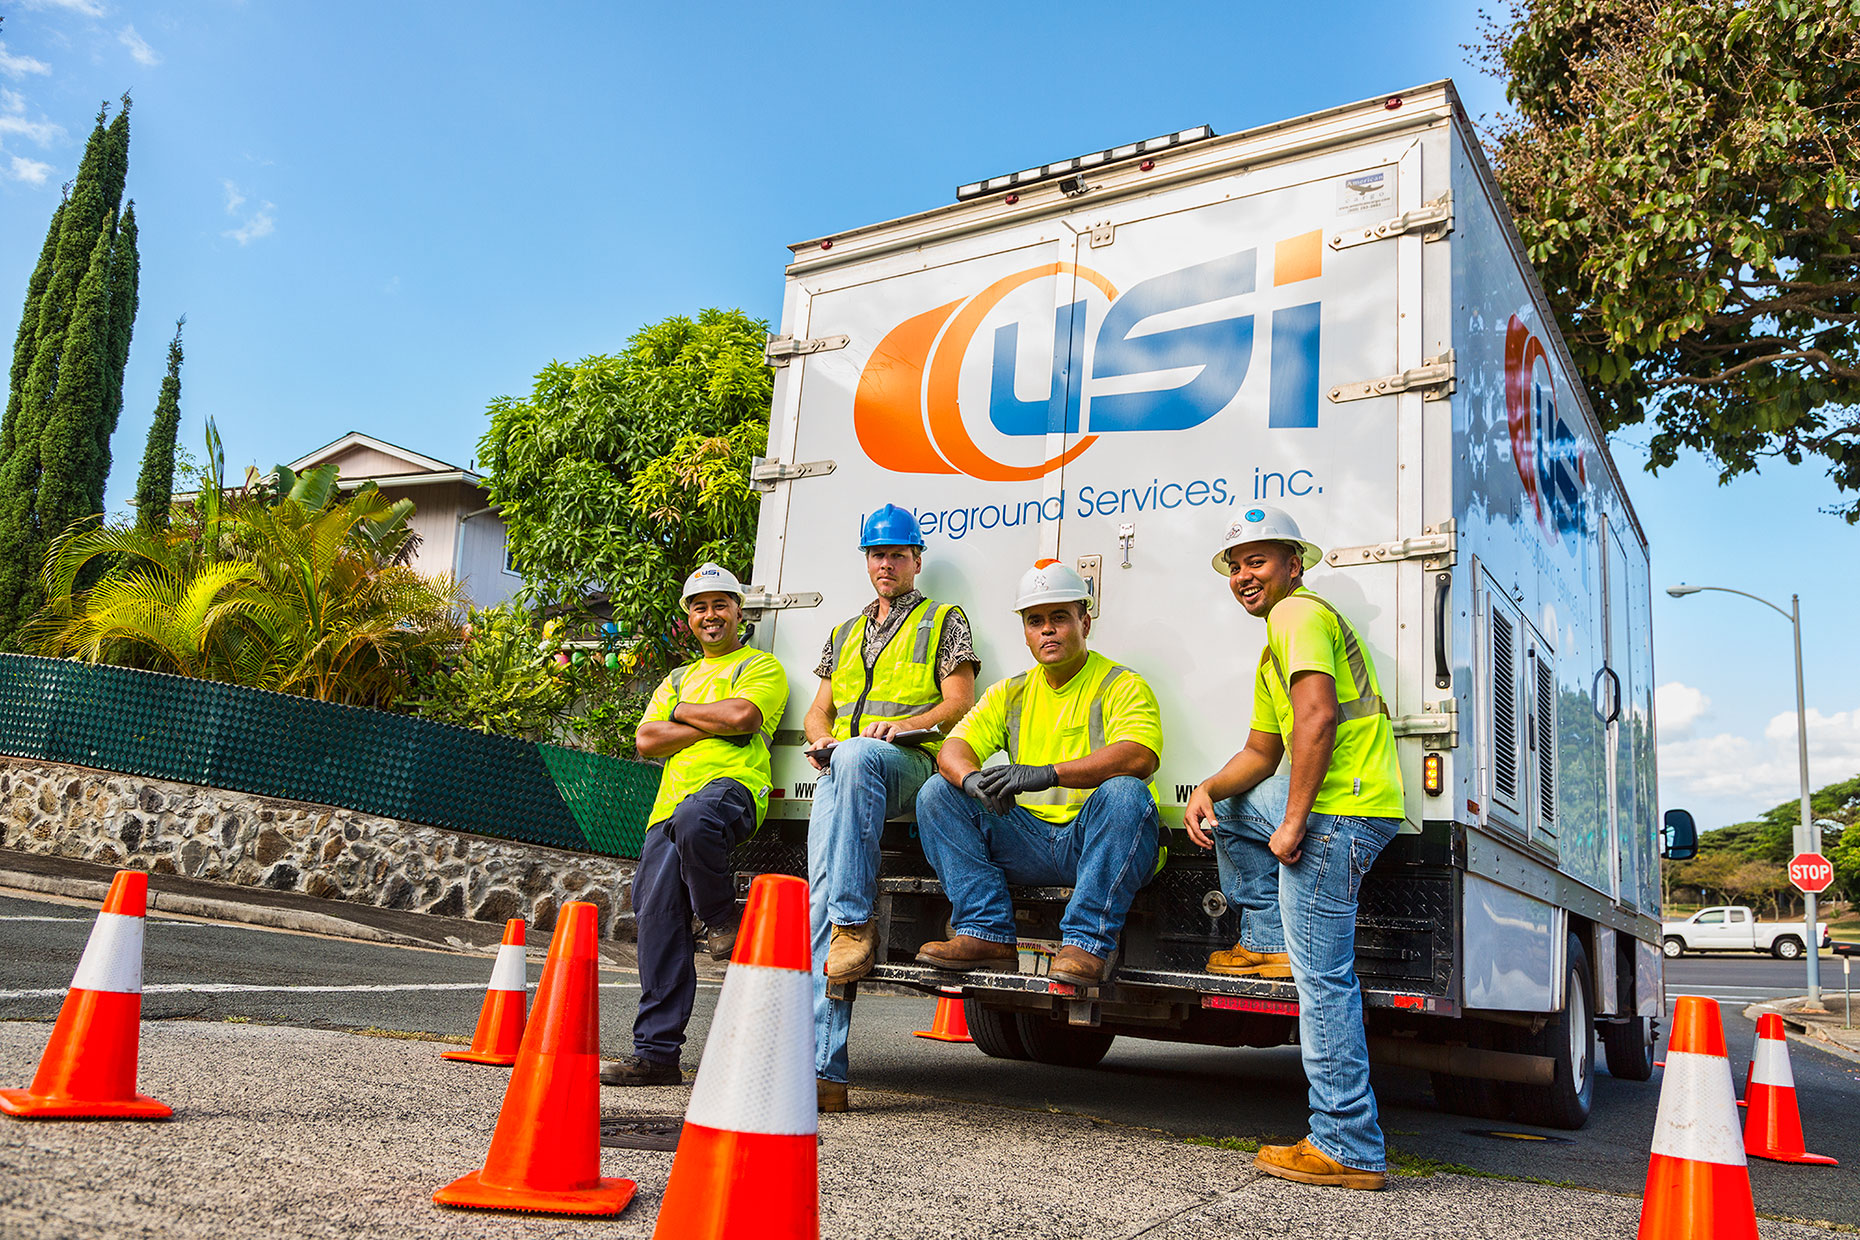 Underground Services, Inc. crew, Honolulu, Hawaii.